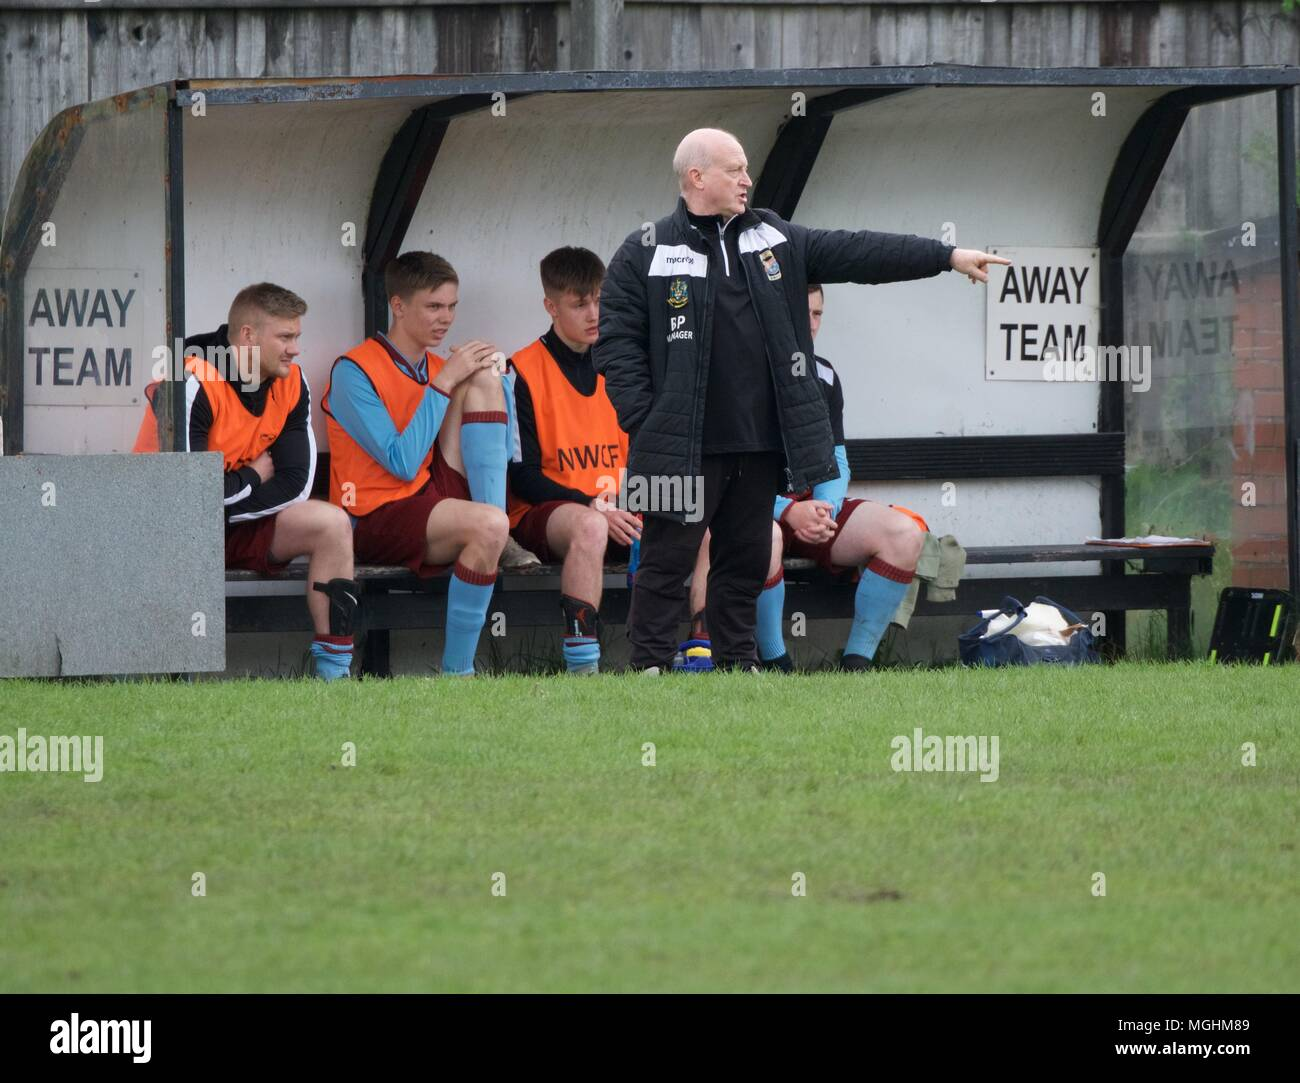 The Bacup Borough dug-out at the  away match against New Mills F C - Stock Image